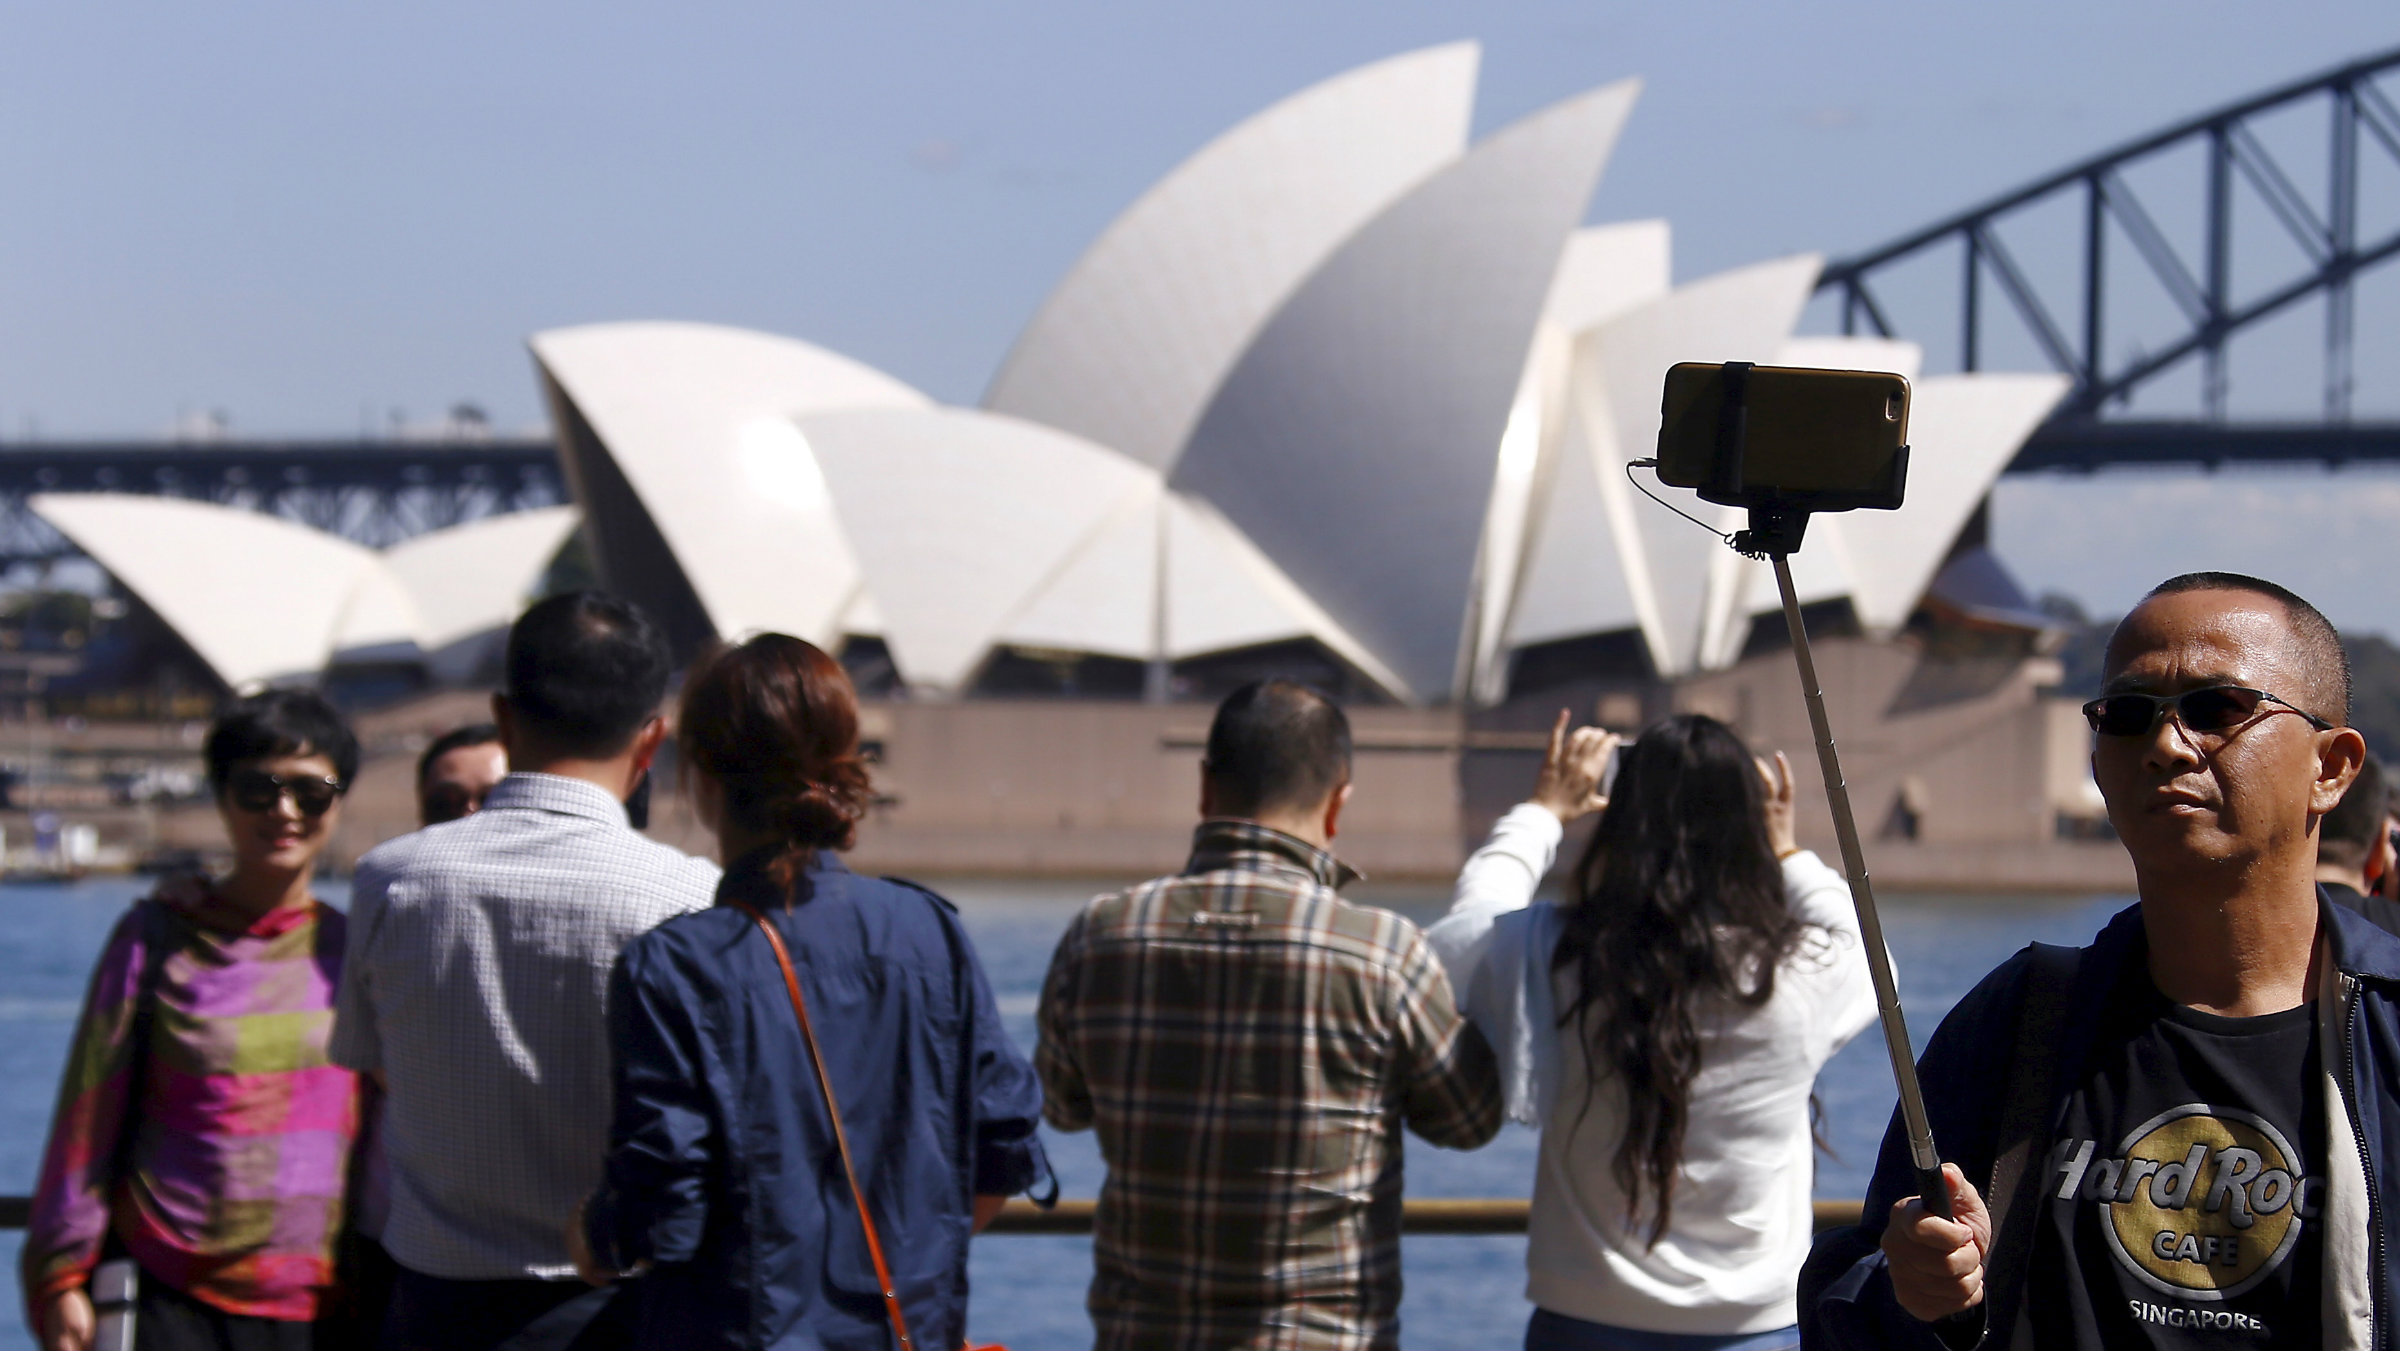 Chinese tourists in front of Sydney Opera House